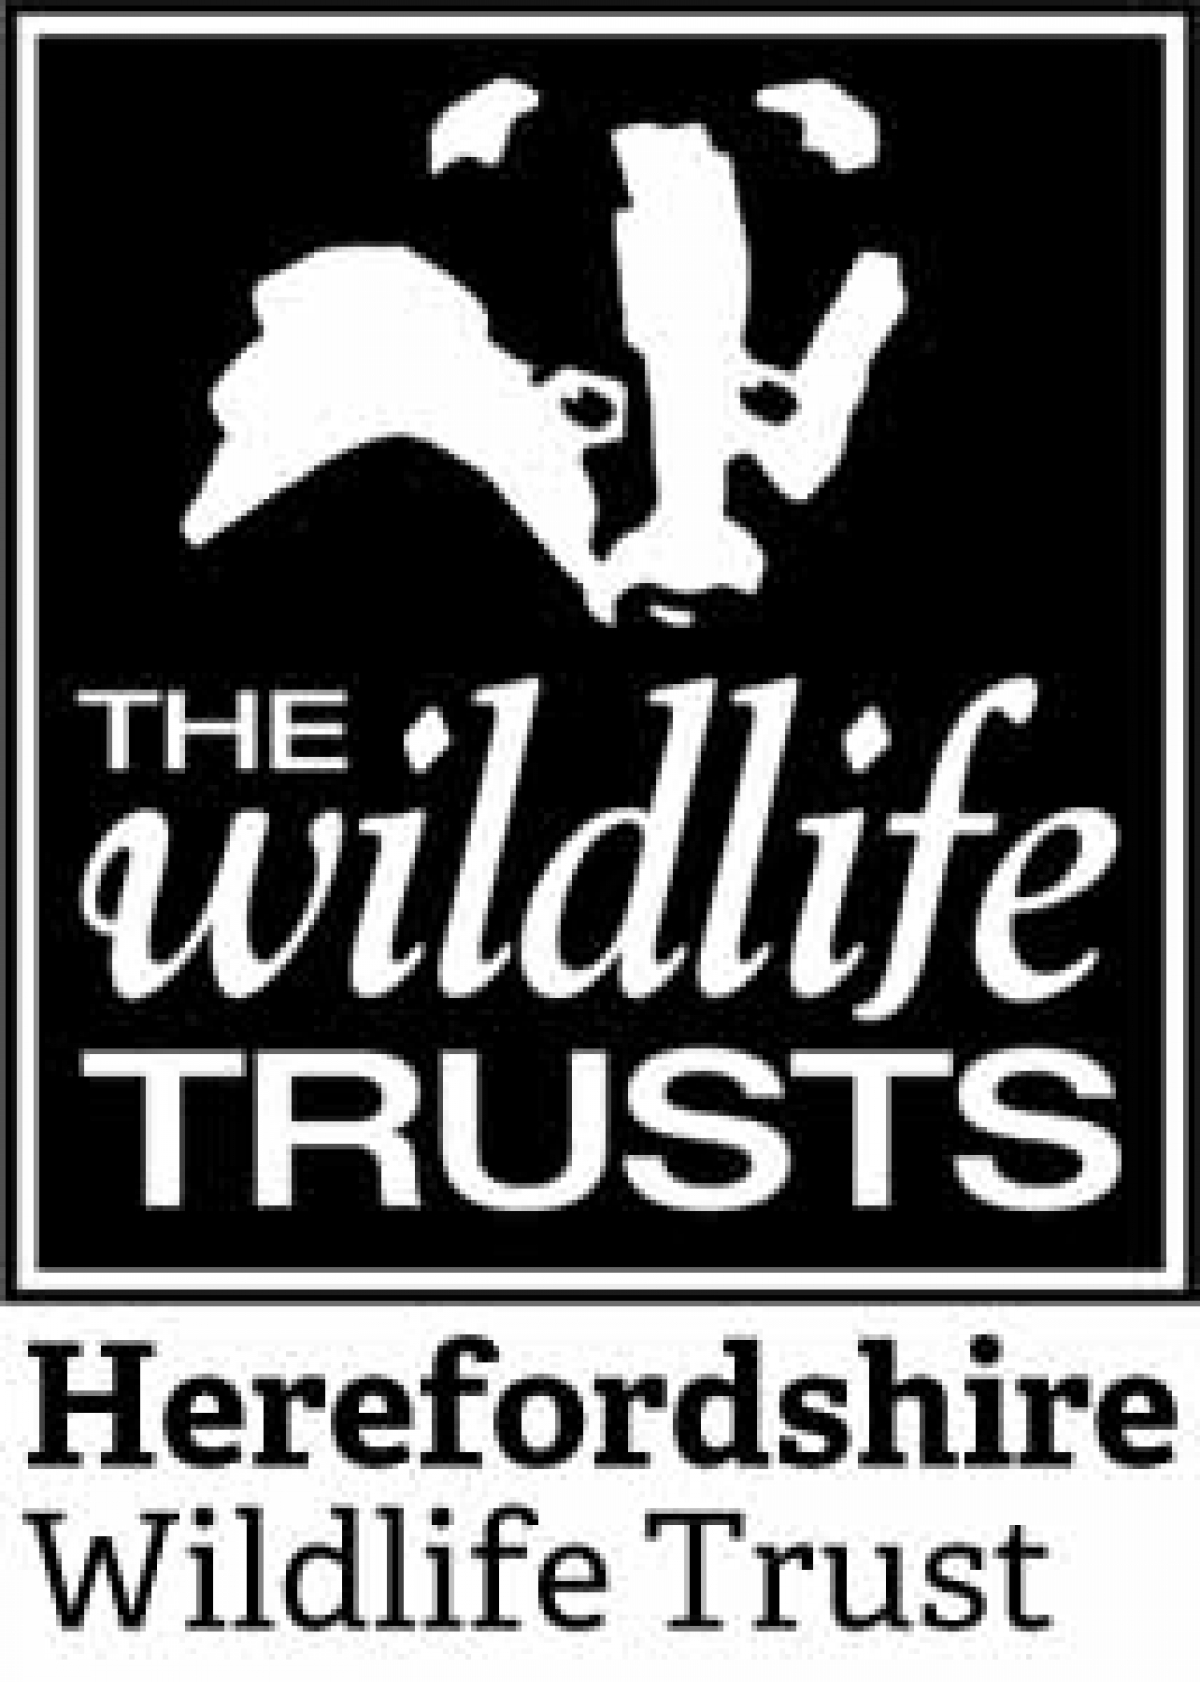 Herefordshire Wildlife Trust eCards